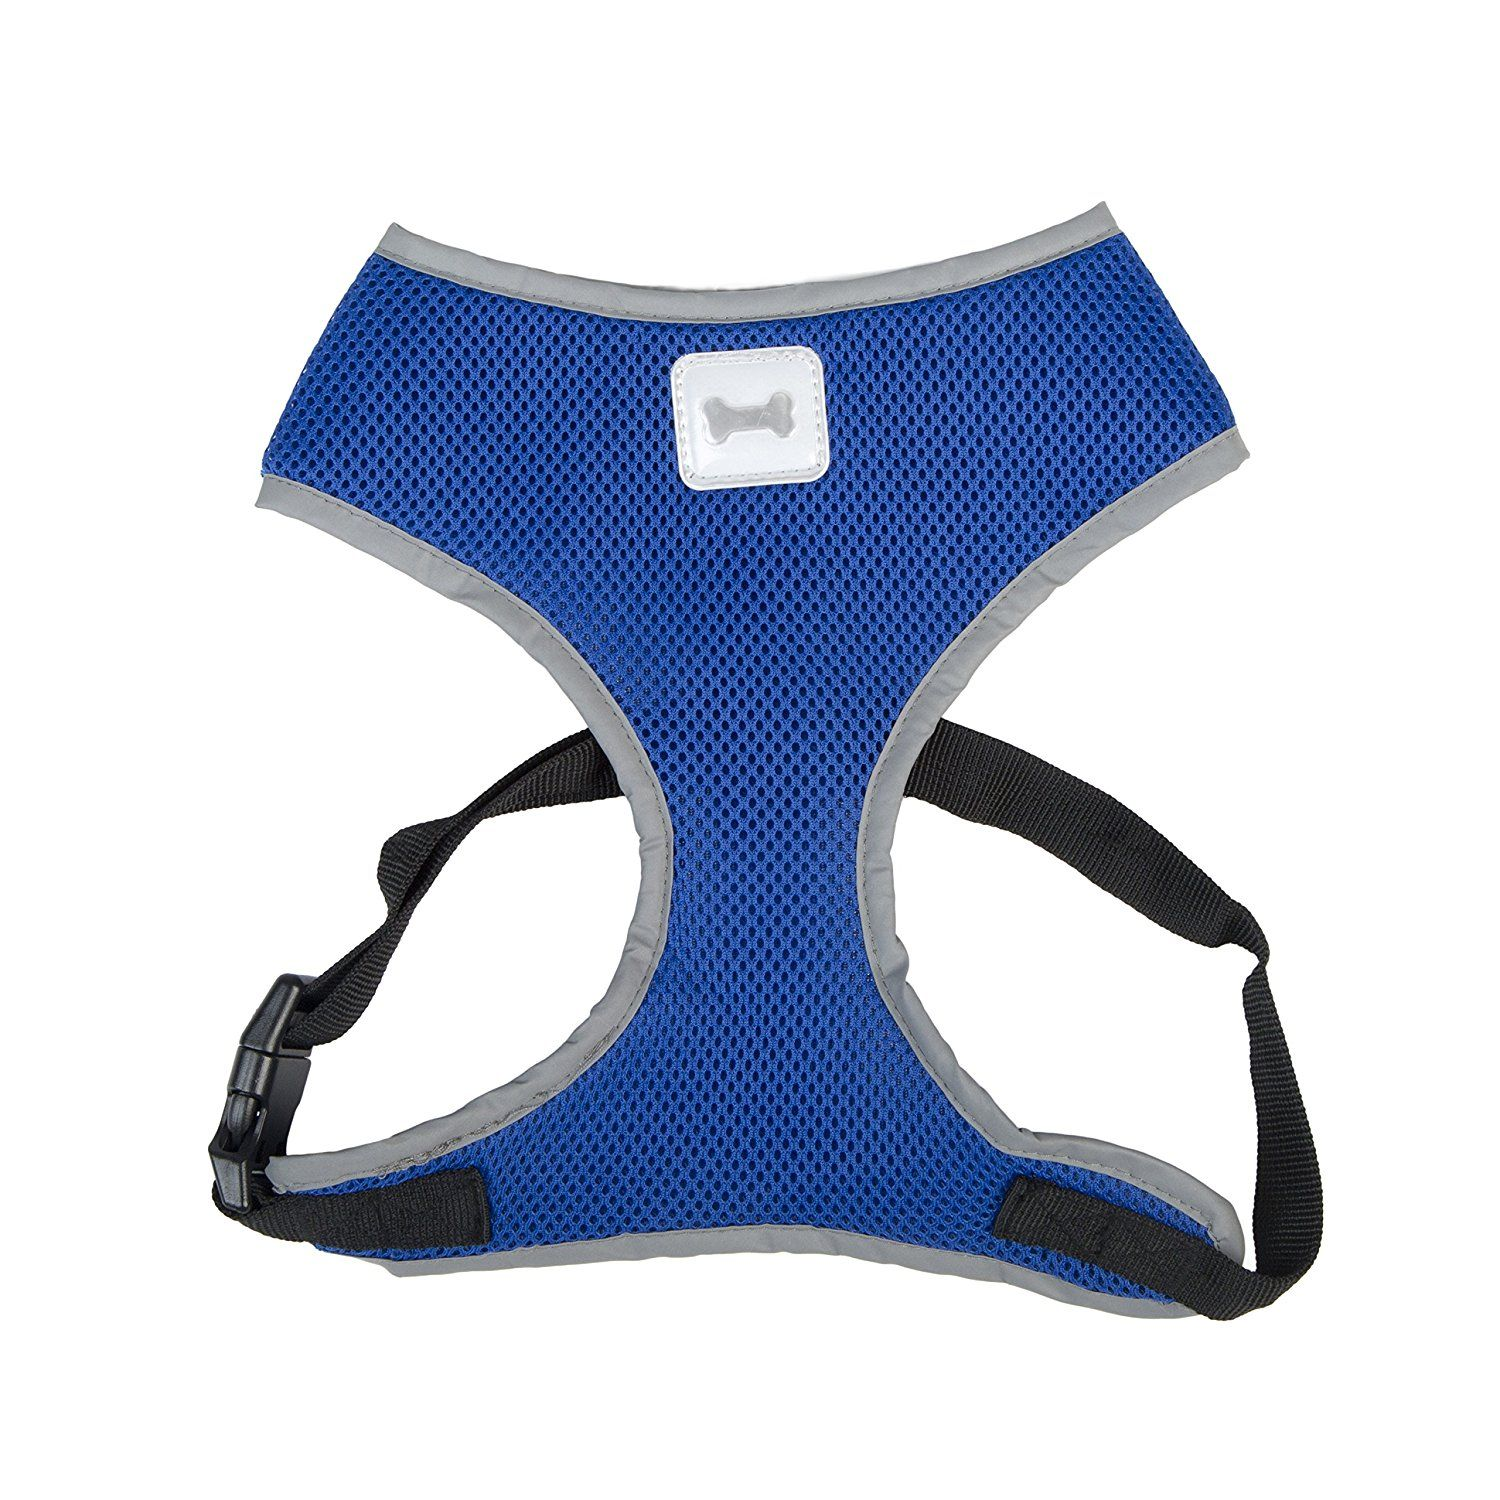 Cobalt Reflective Mesh TStrap Harness You can find out